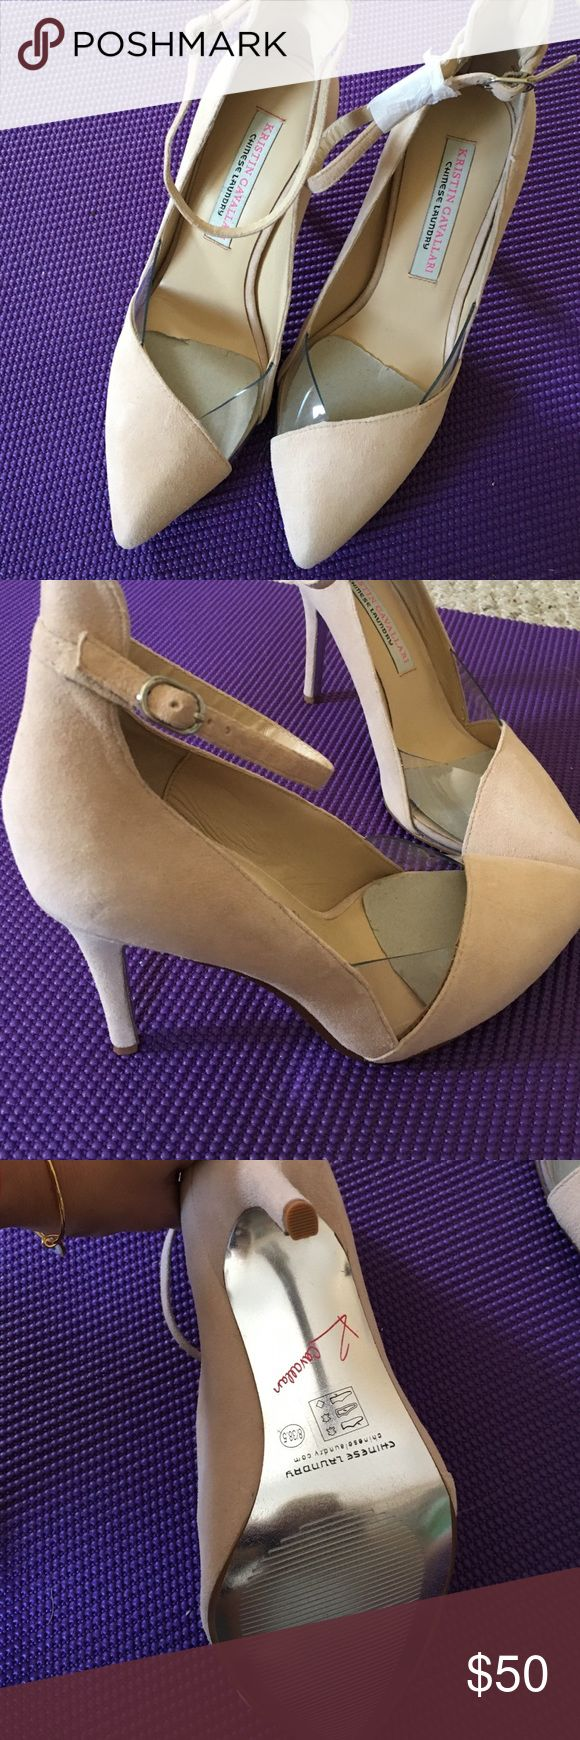 NWOT Kristin cavallari nude suede heels Nude suede with clear accent Chinese laundry heels, never worn Kristin cavalari chinese laundry Shoes Heels